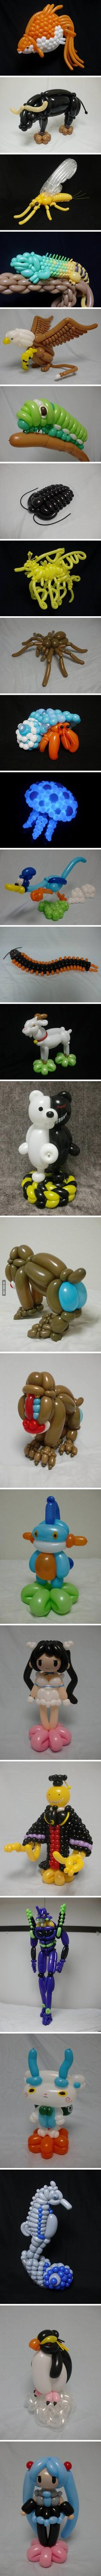 Damn! This is a whole new level of balloon twisting